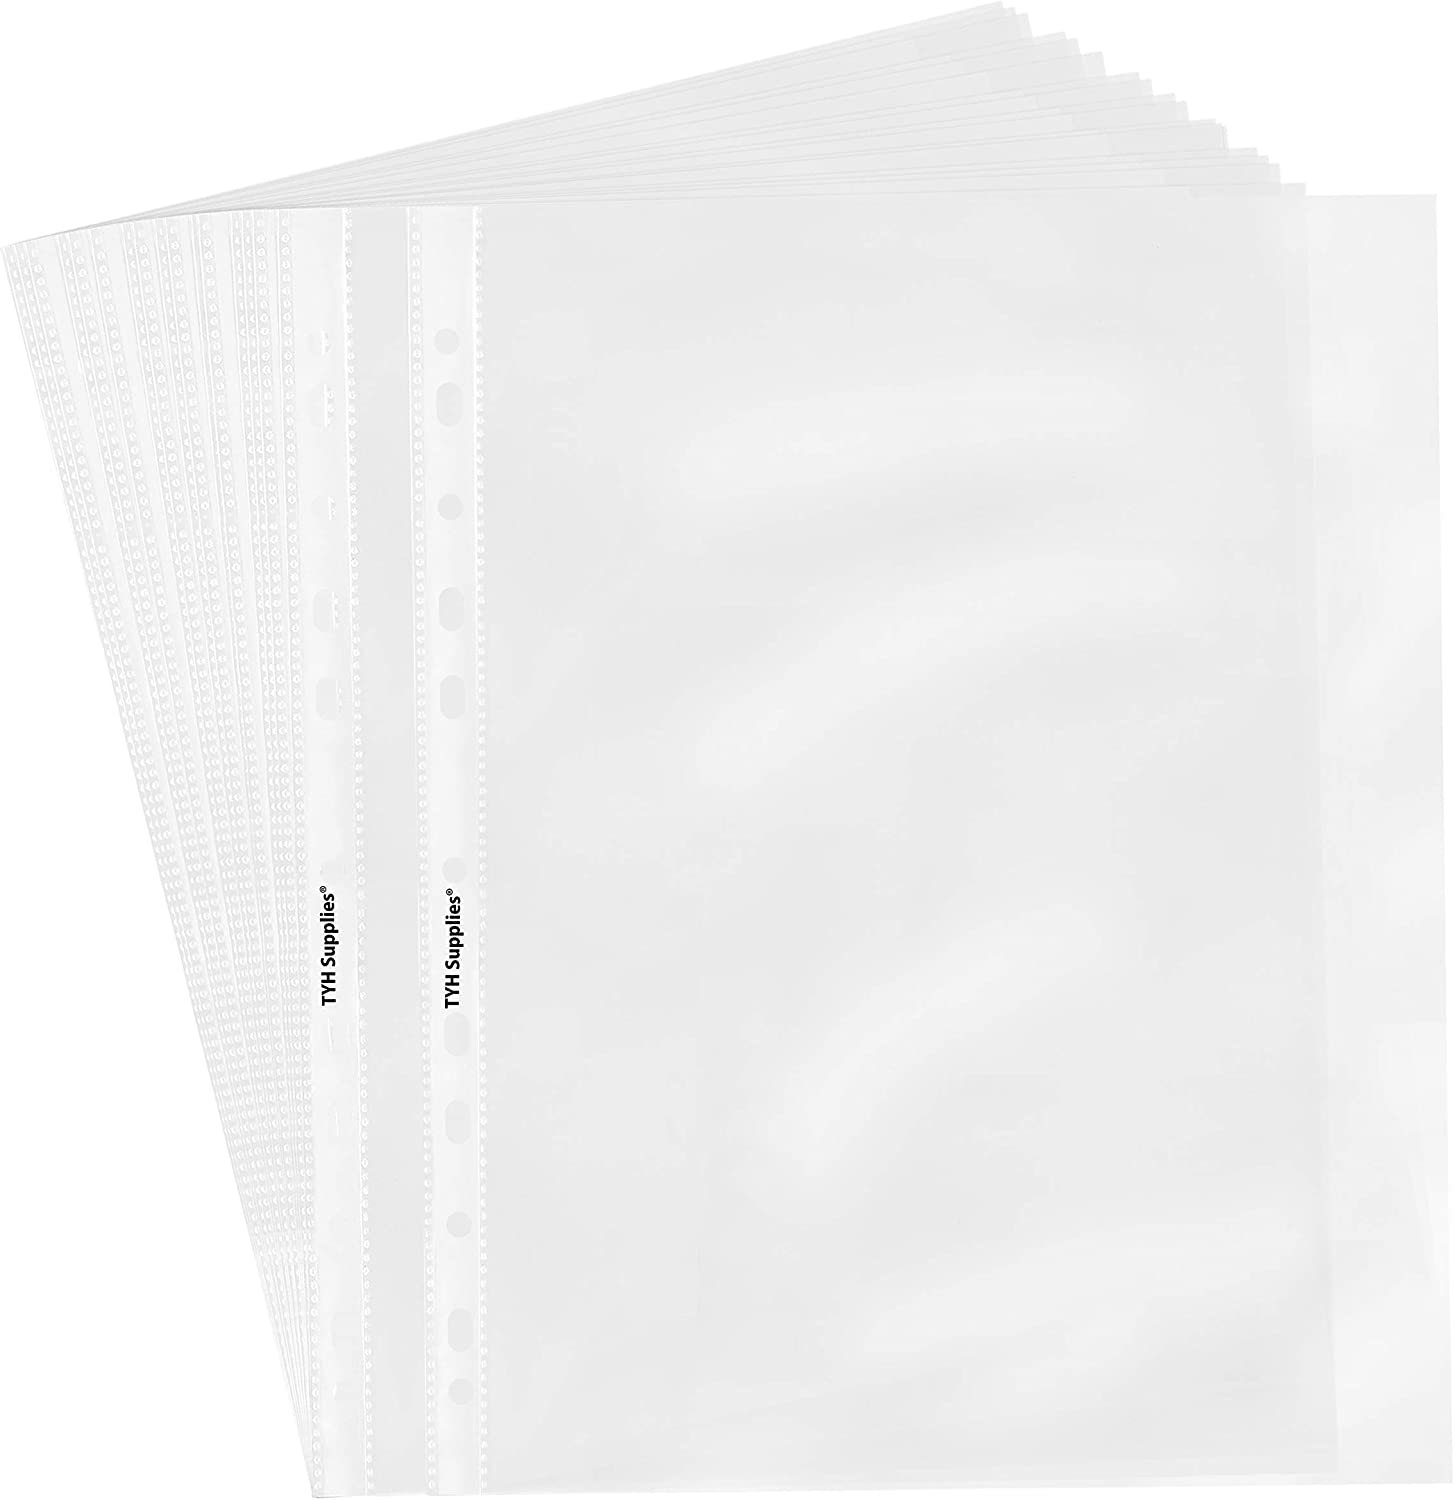 TYH Supplies 200 Pack Heavyweight Non Glare Sheet Protectors 8.5 x 11 Inch Top Loading Non Vinyl Acid Free 11 Hole